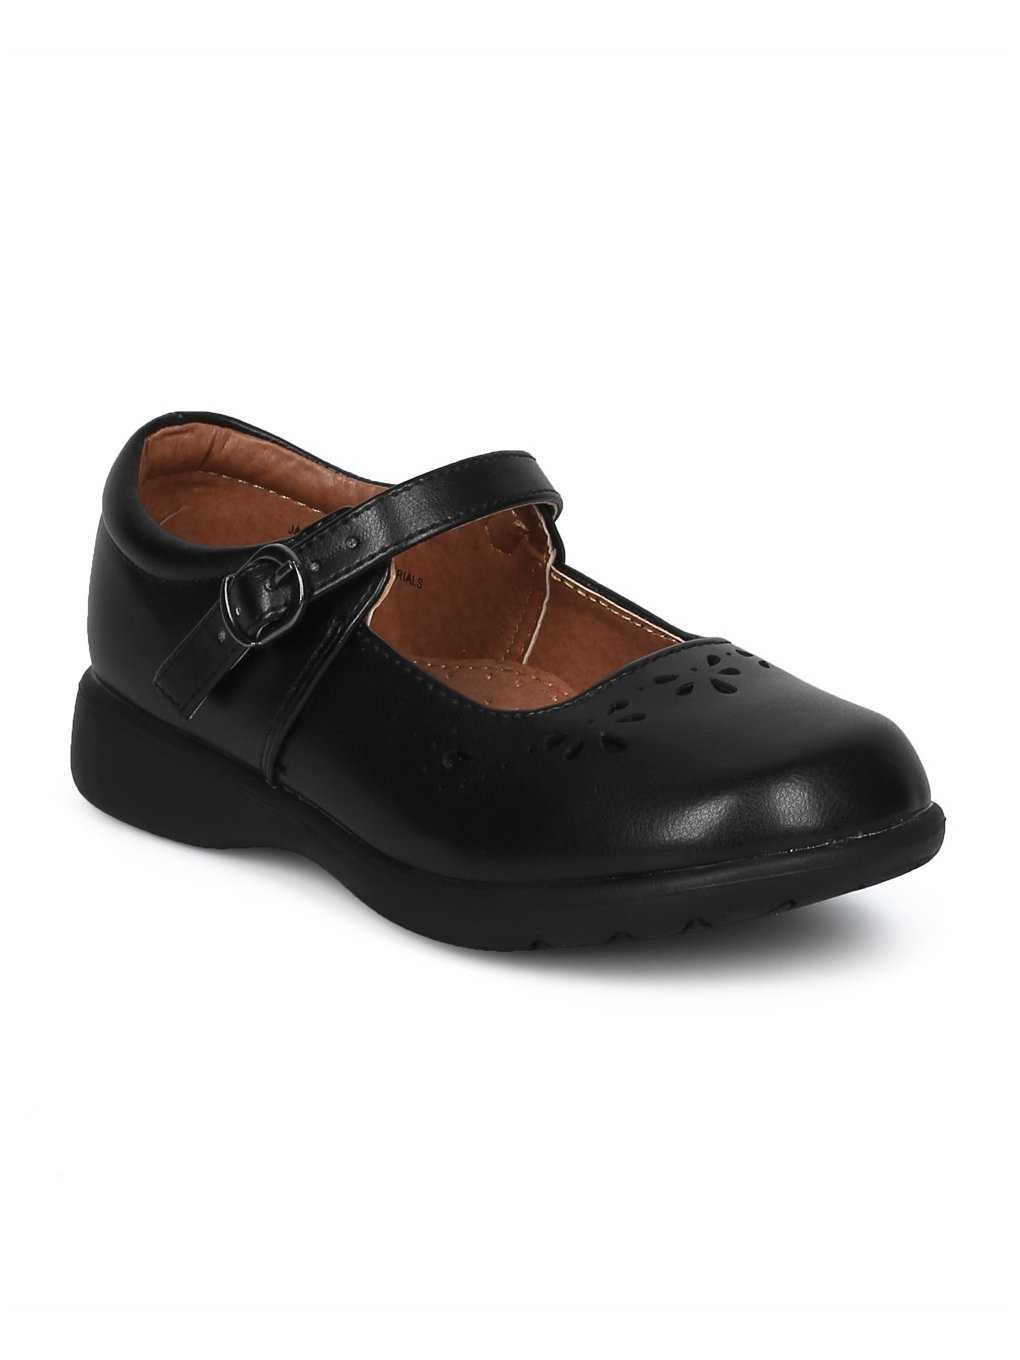 Alrisco Girls Leatherette Round Toe Mary Jane Uniform Shoe HD41 - Black Leatherette (Size: Toddler 10)